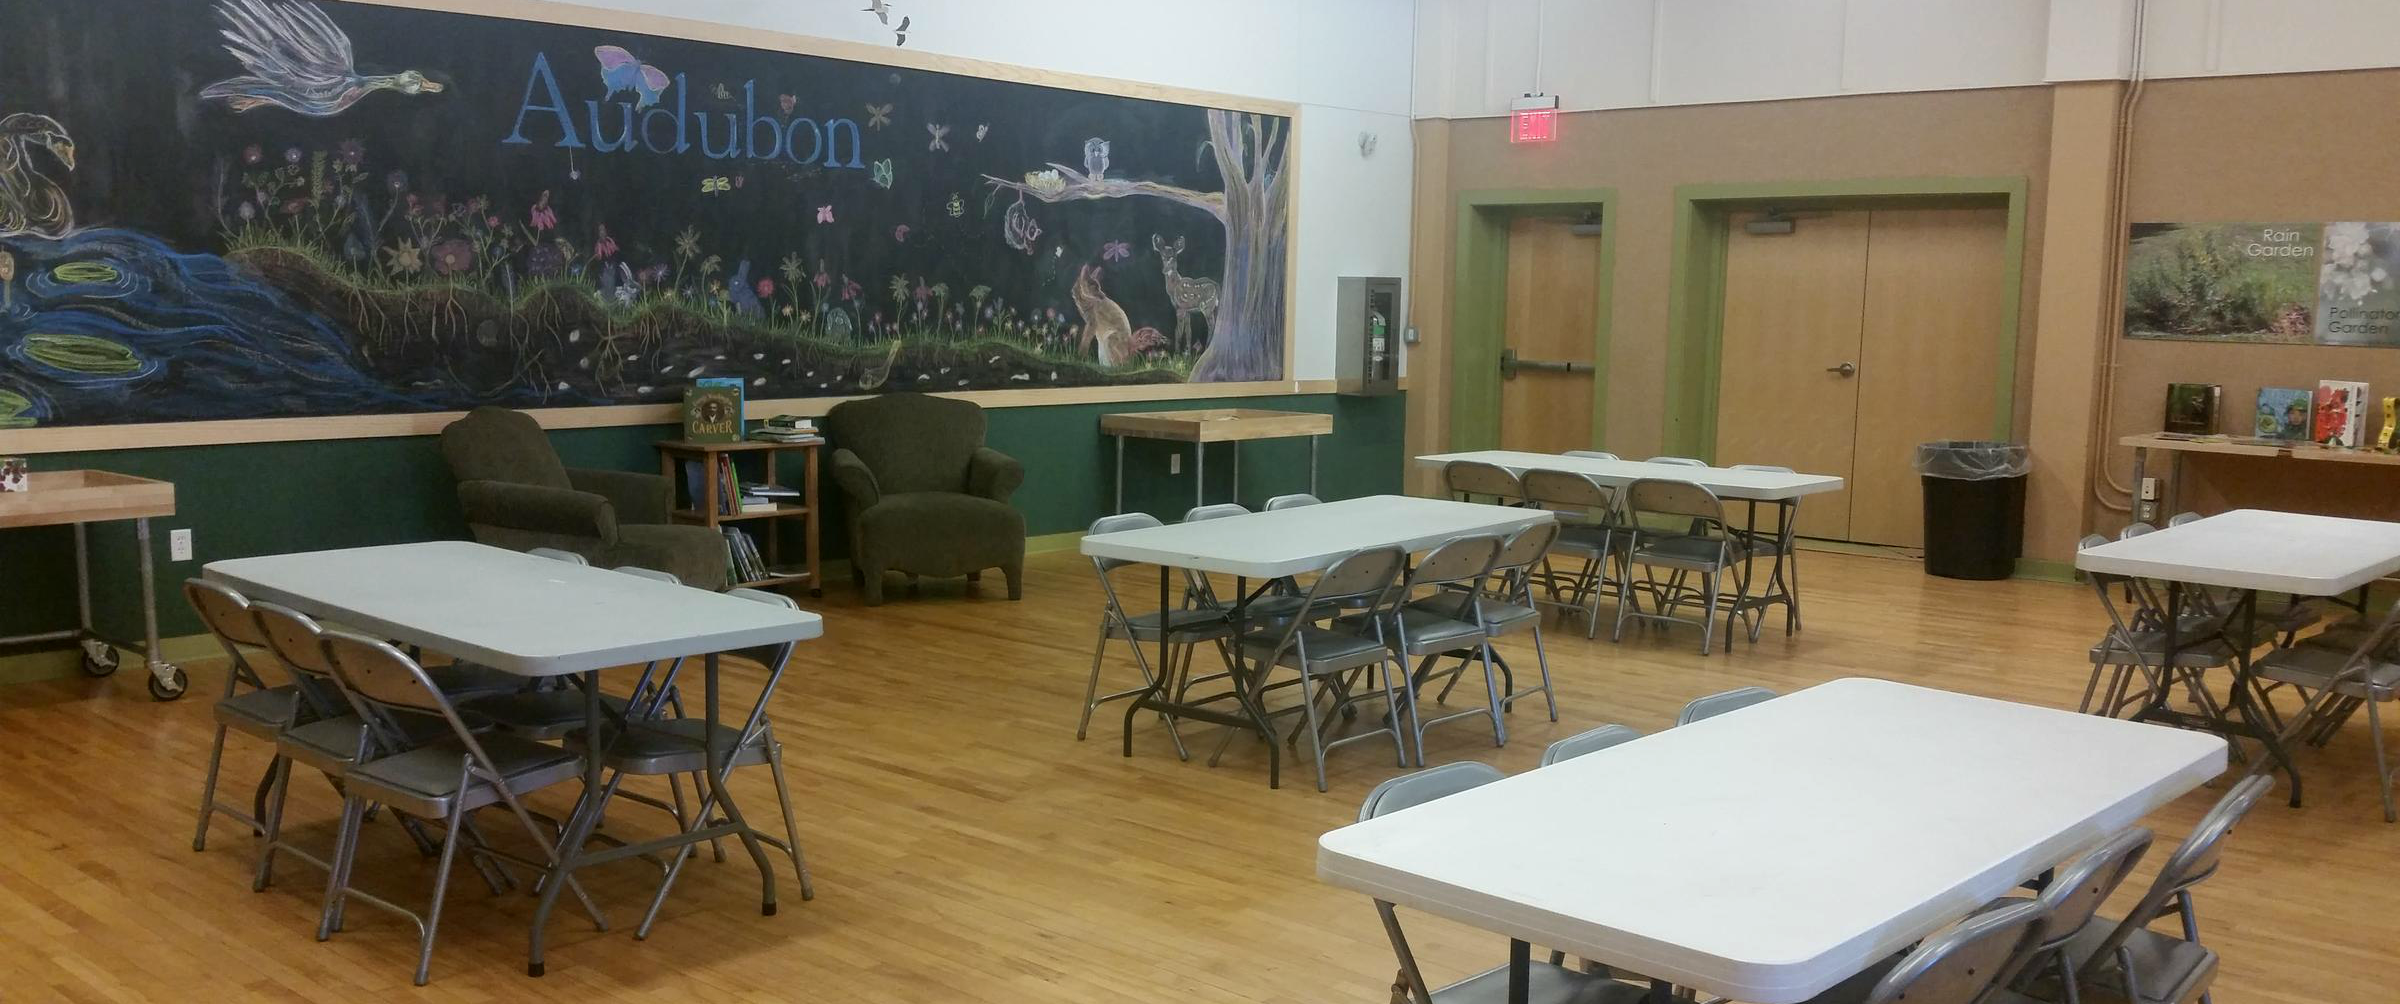 Audubon Center Community Room